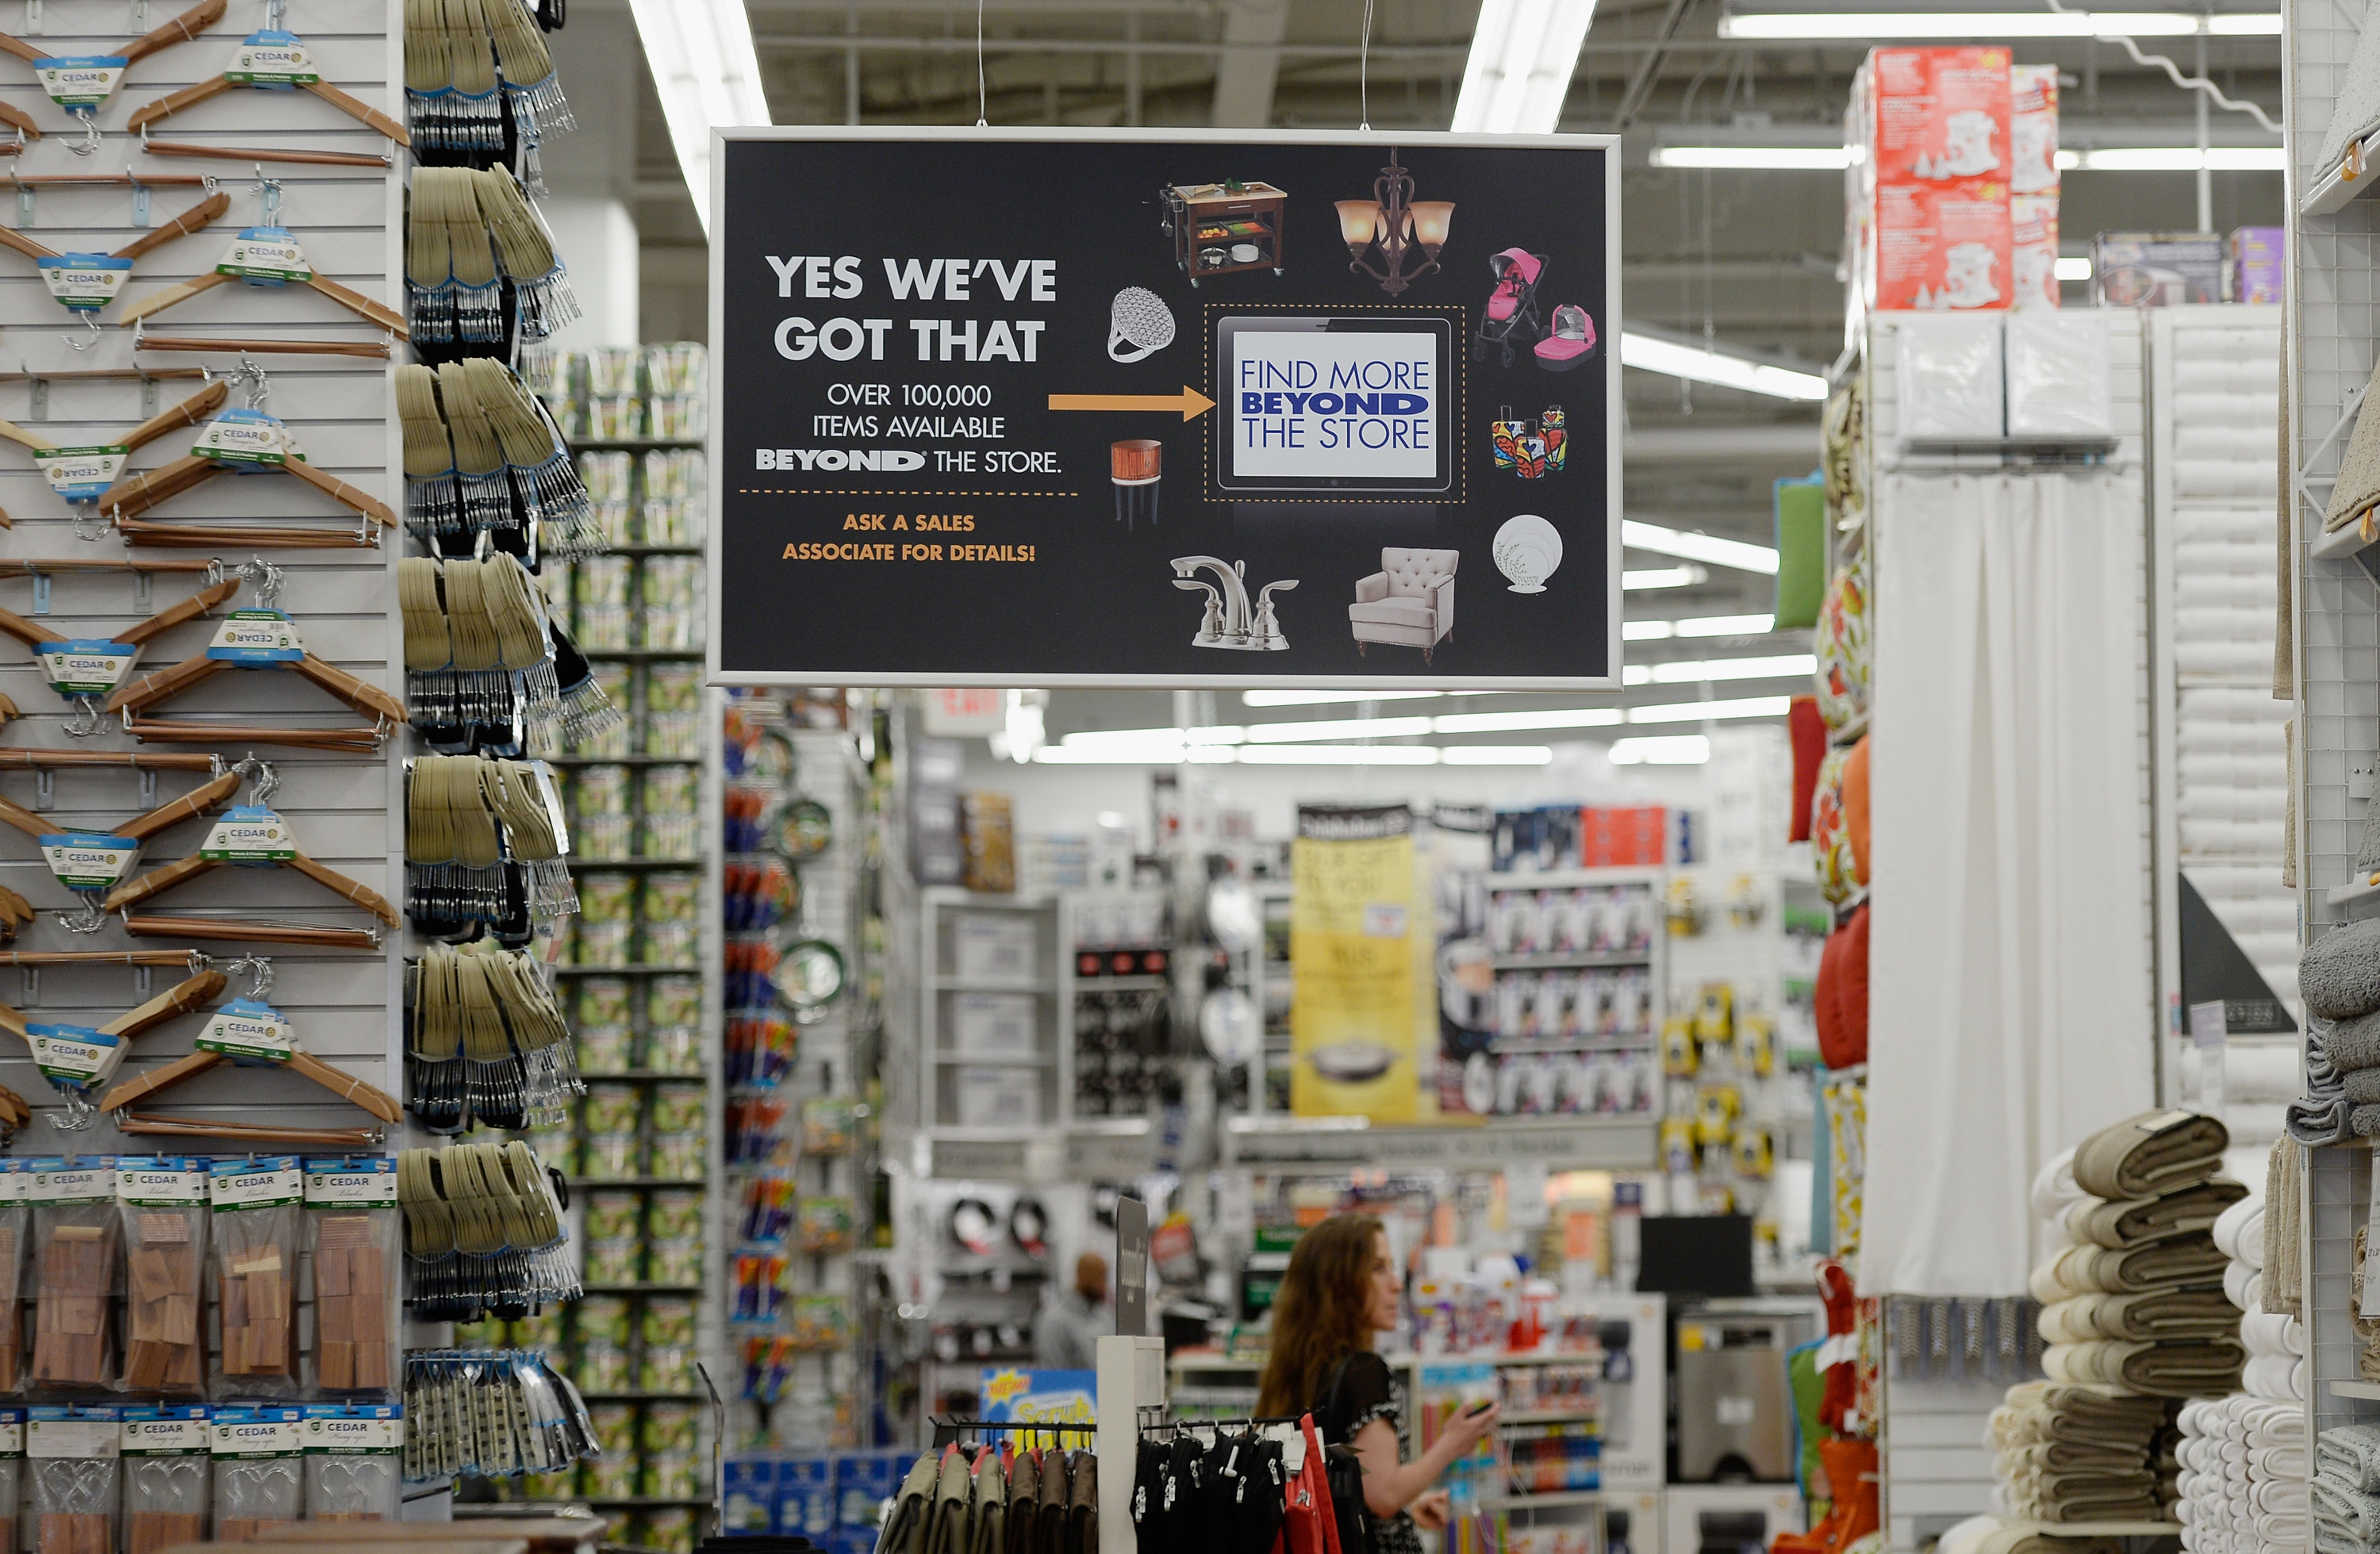 Permalink to 26 inspirational image of Store Hours For Bed Bath & Beyond